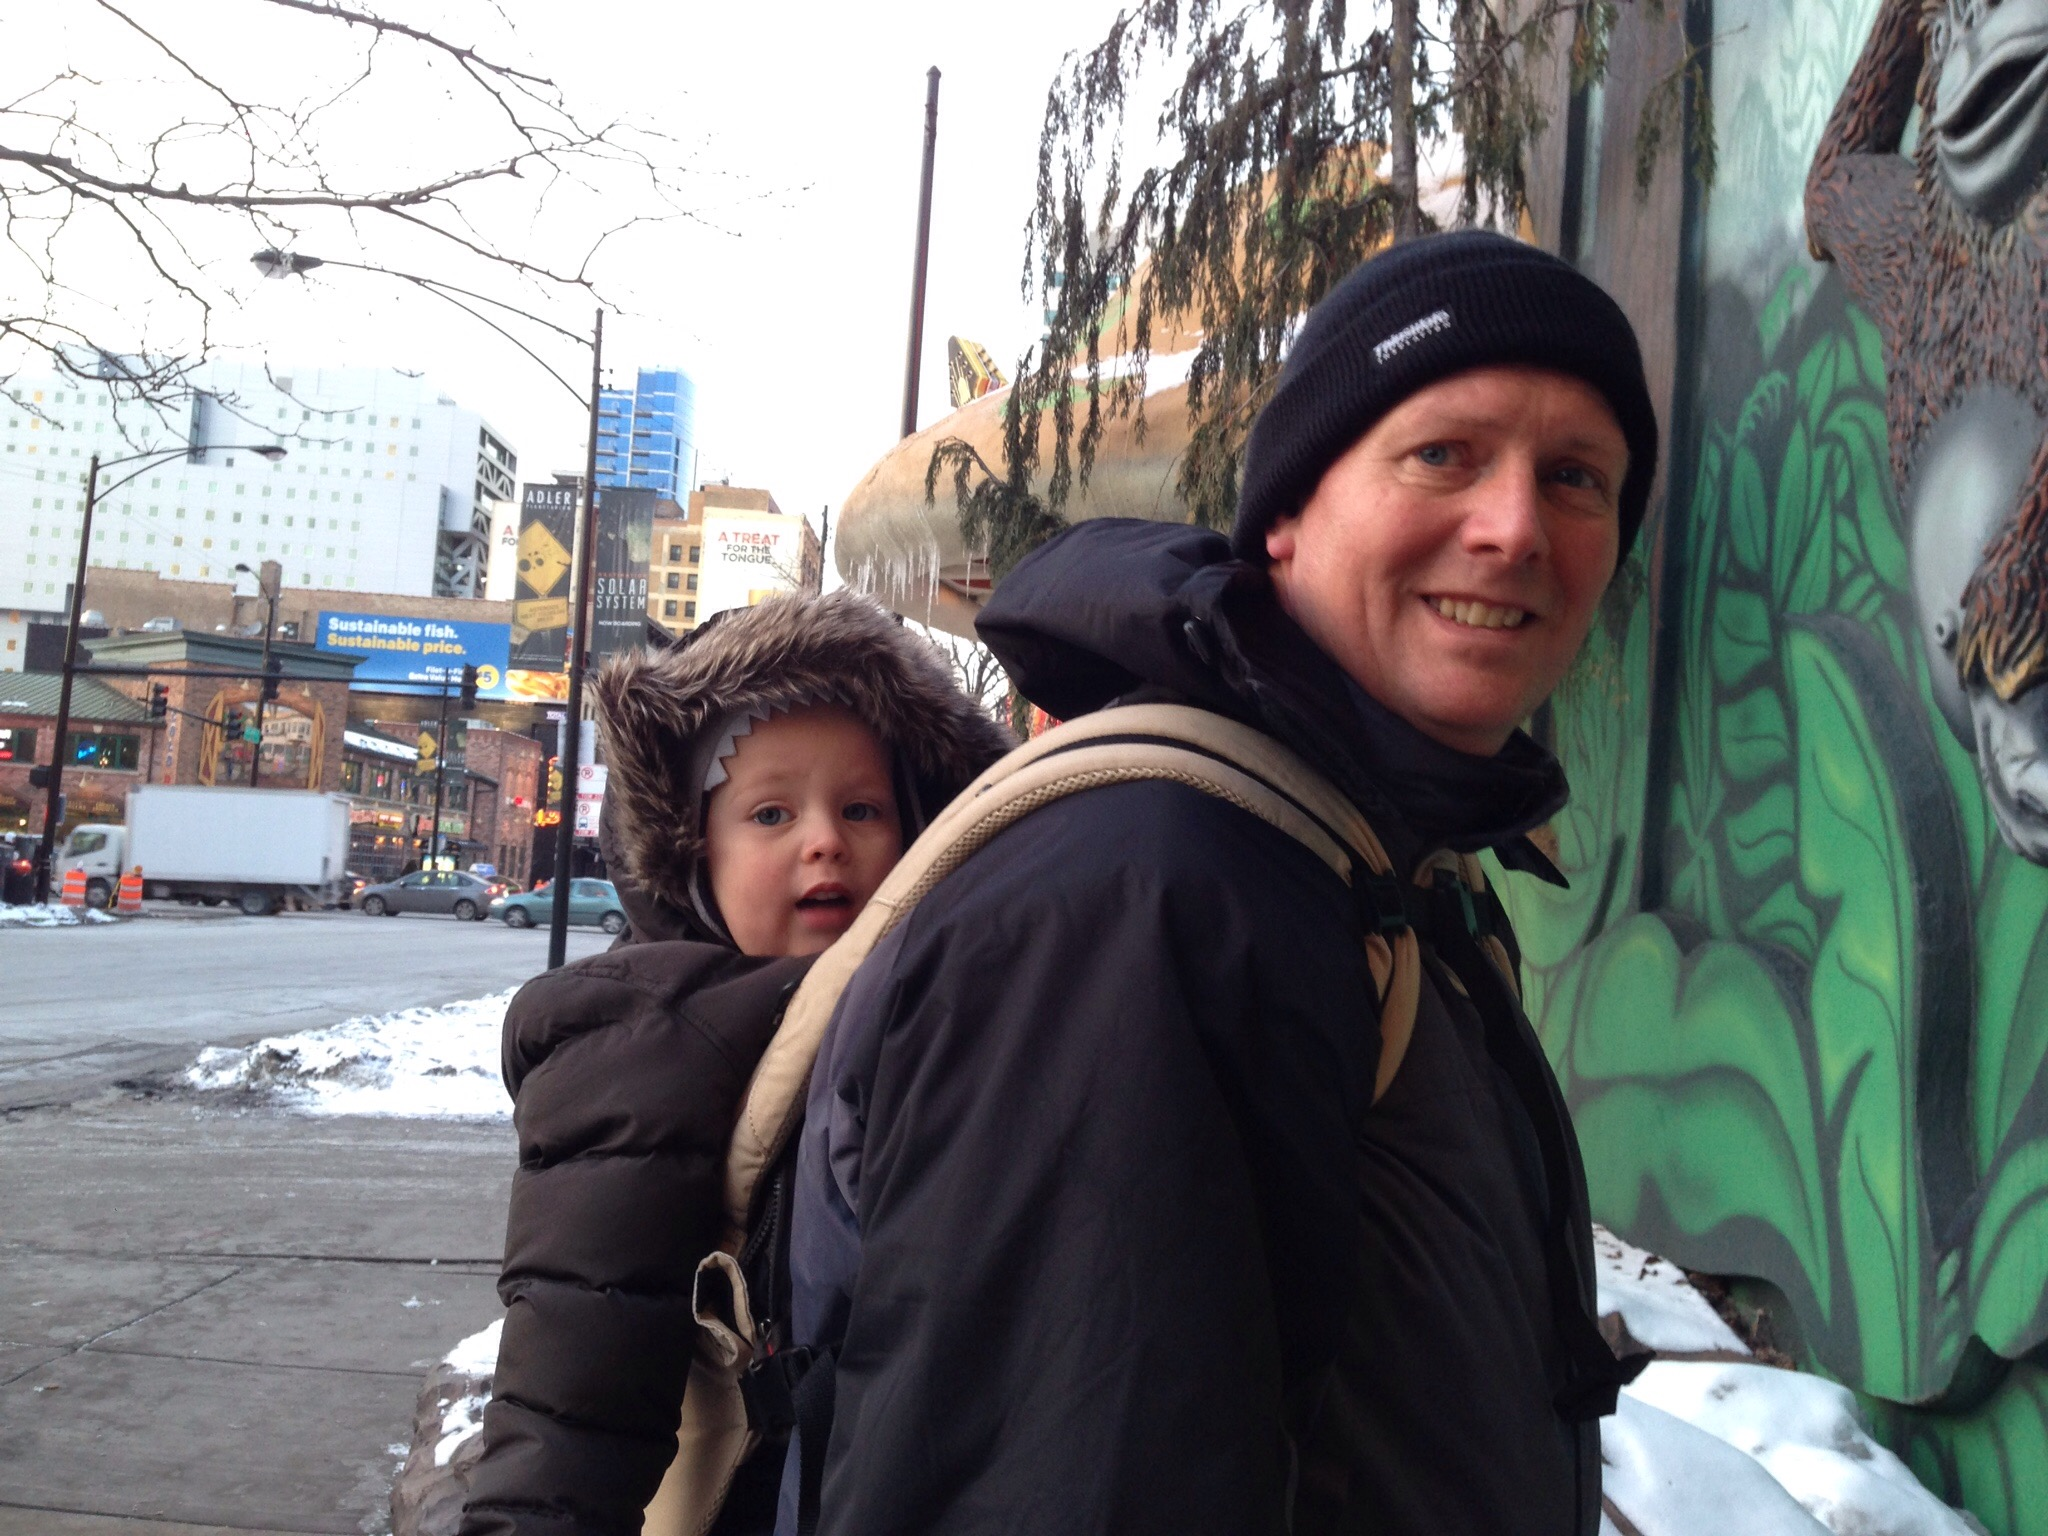 babywearing daddy in chicago cold weather